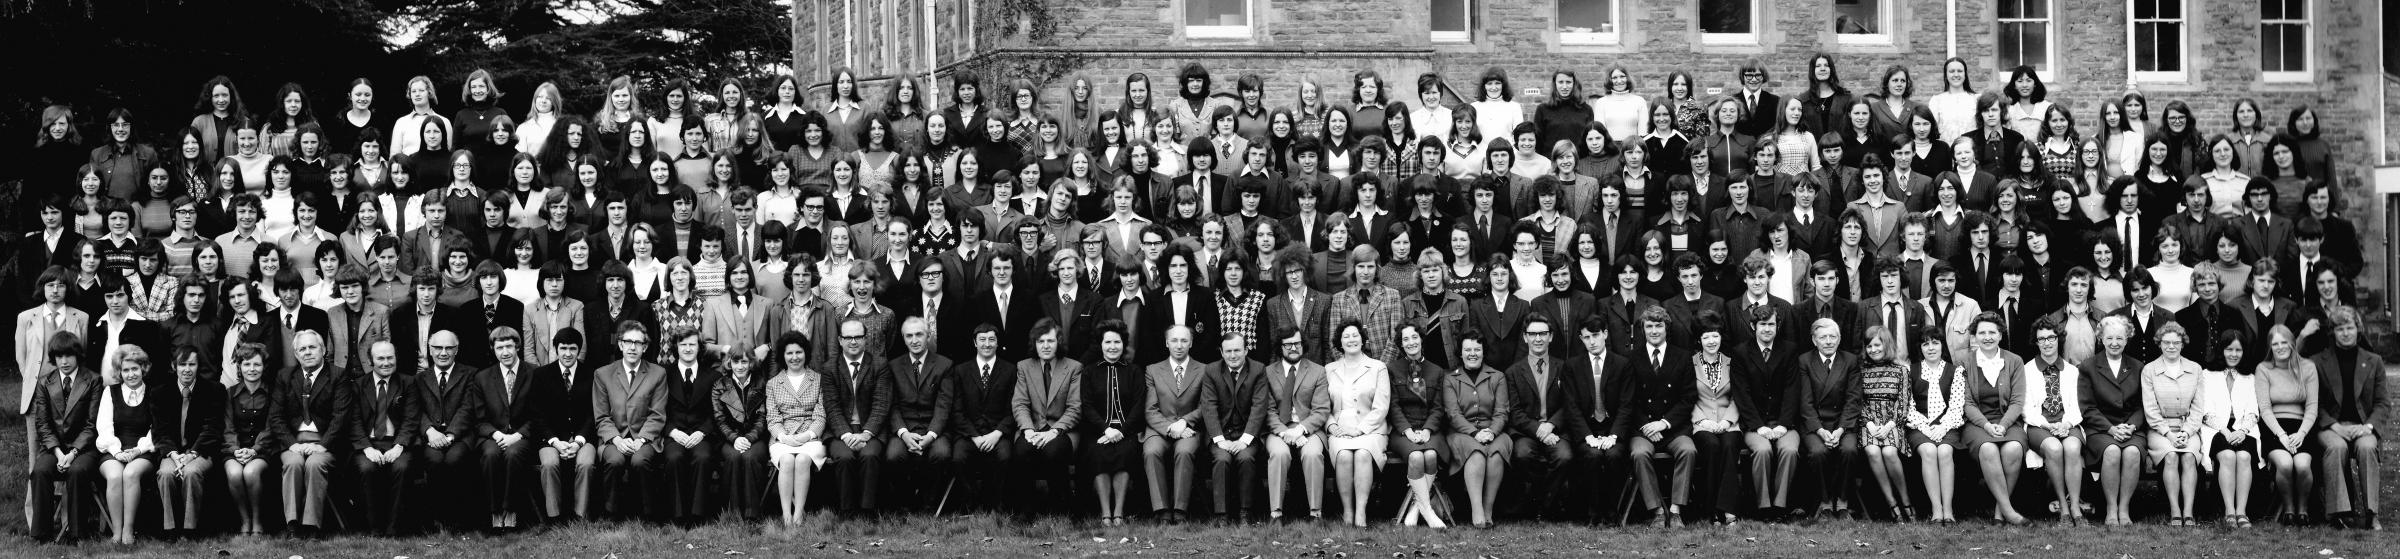 The class of '73 will be celebrating Hereford Sixth Form College's 40th anniversary.